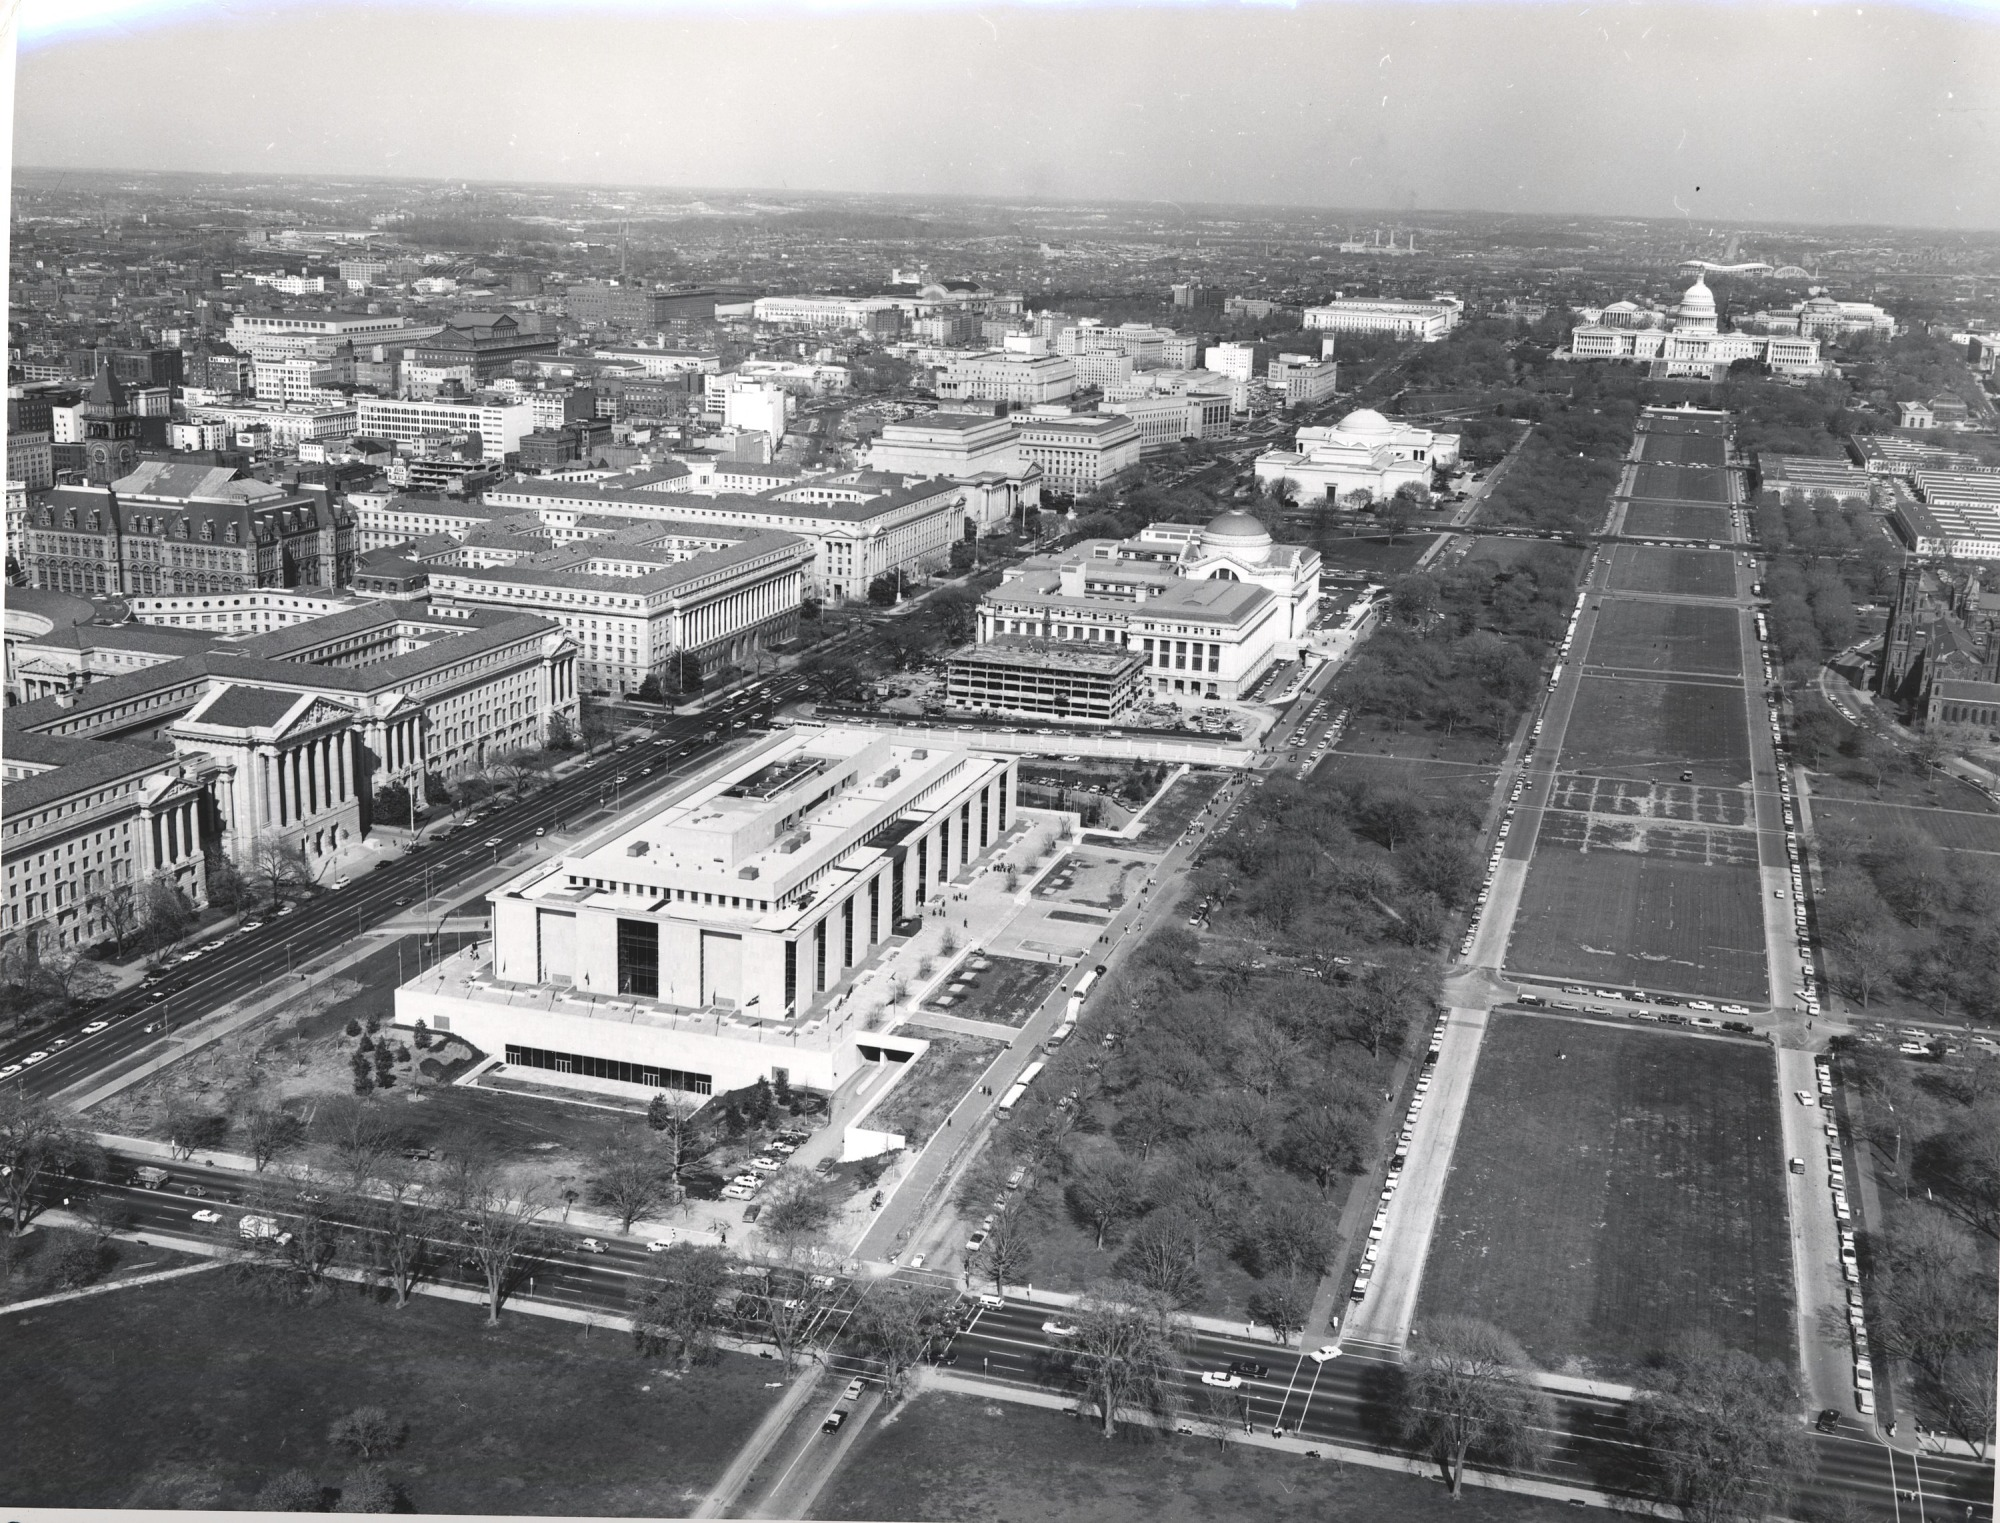 Newly Completed Museum of History and Technology, by Unknown, Smithsonian Archives - History Div, SIA2010-2181 or P6499-A or MAH-P6499A.